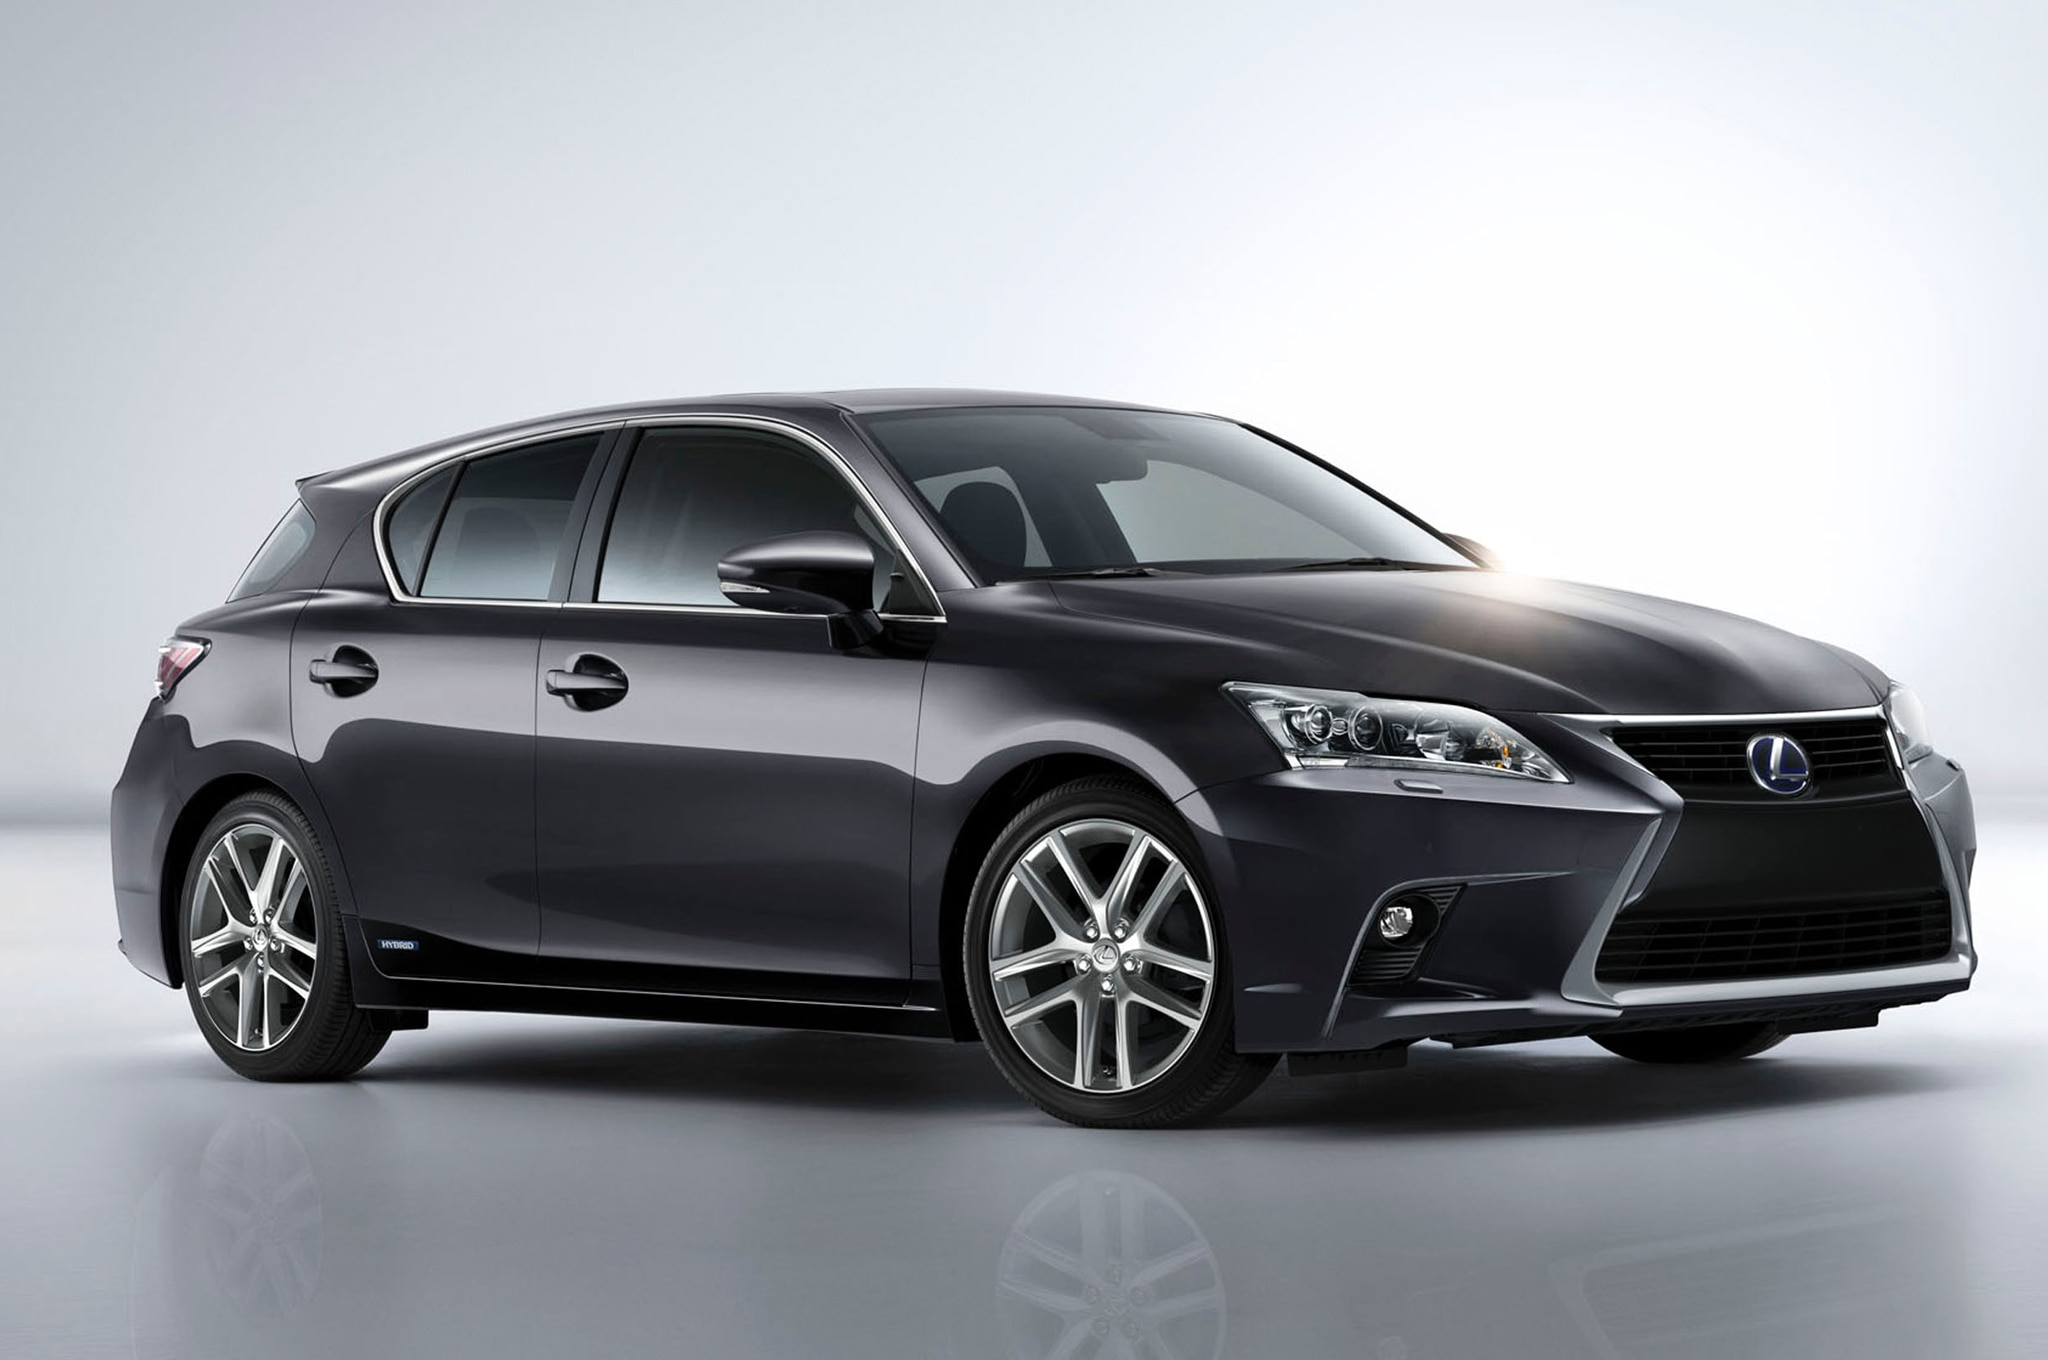 2014 Lexus CT200h Front Three Quarter 11